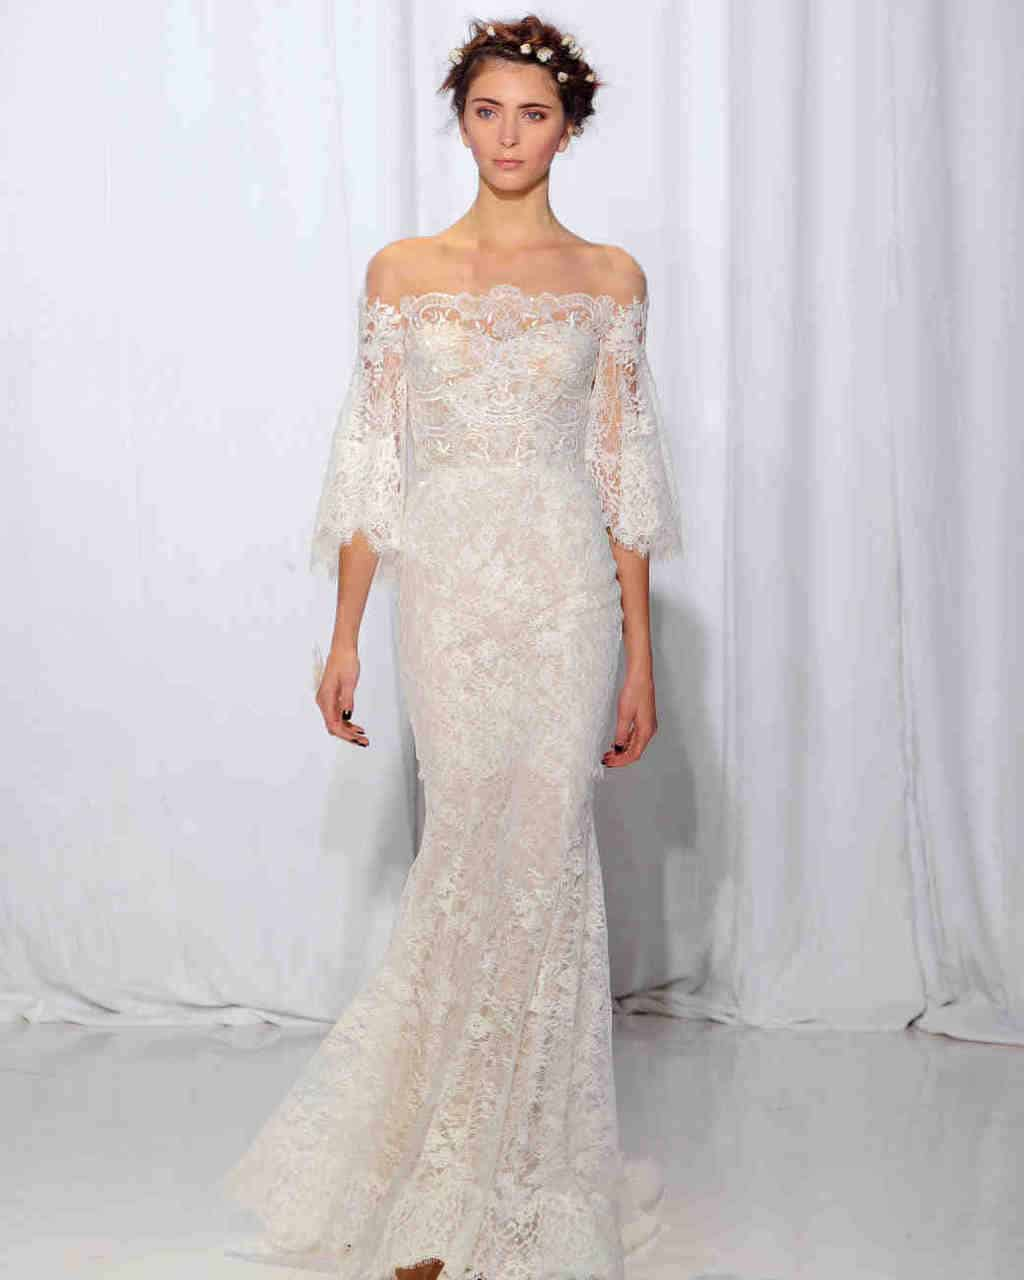 reem-acra-wedding-dress-fall2017-6203351-021_vert-1